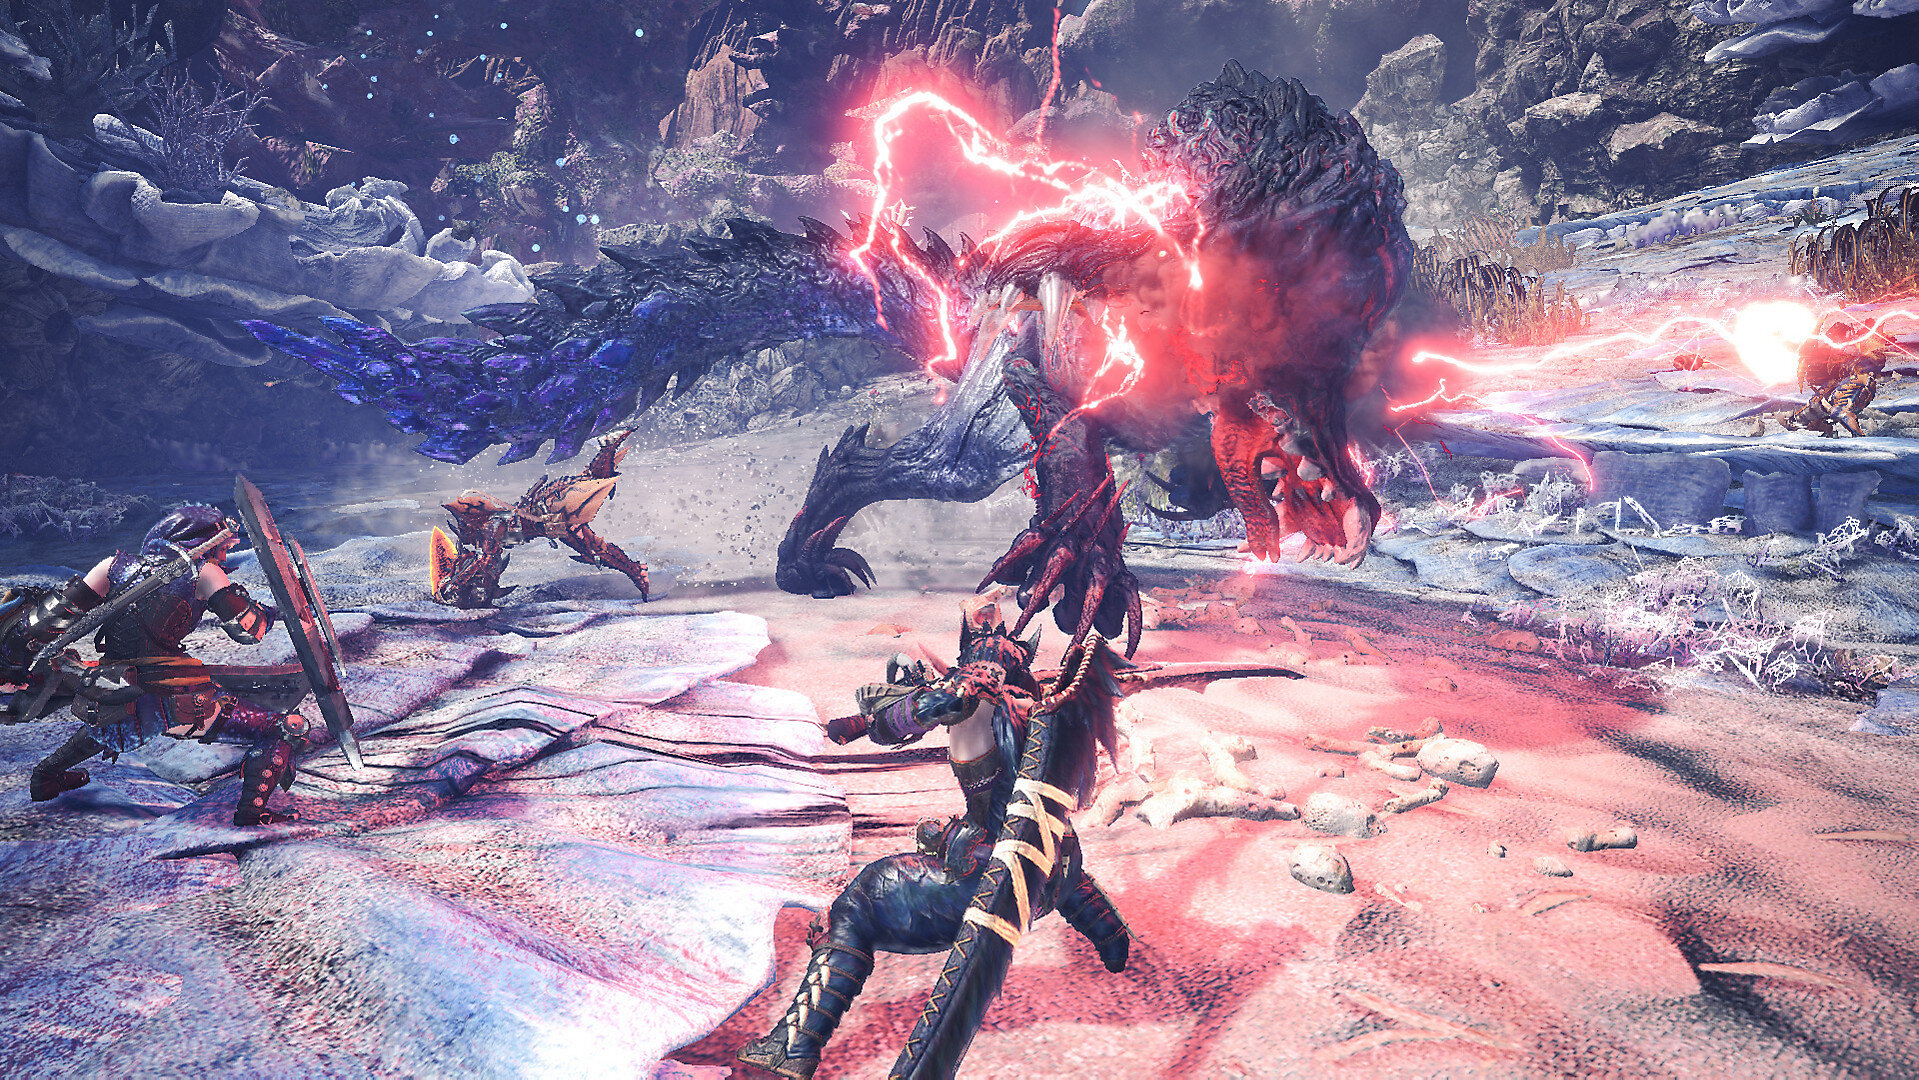 monster-hunter-world-iceborne-screen-05-ps4-us-09aug19.jpeg